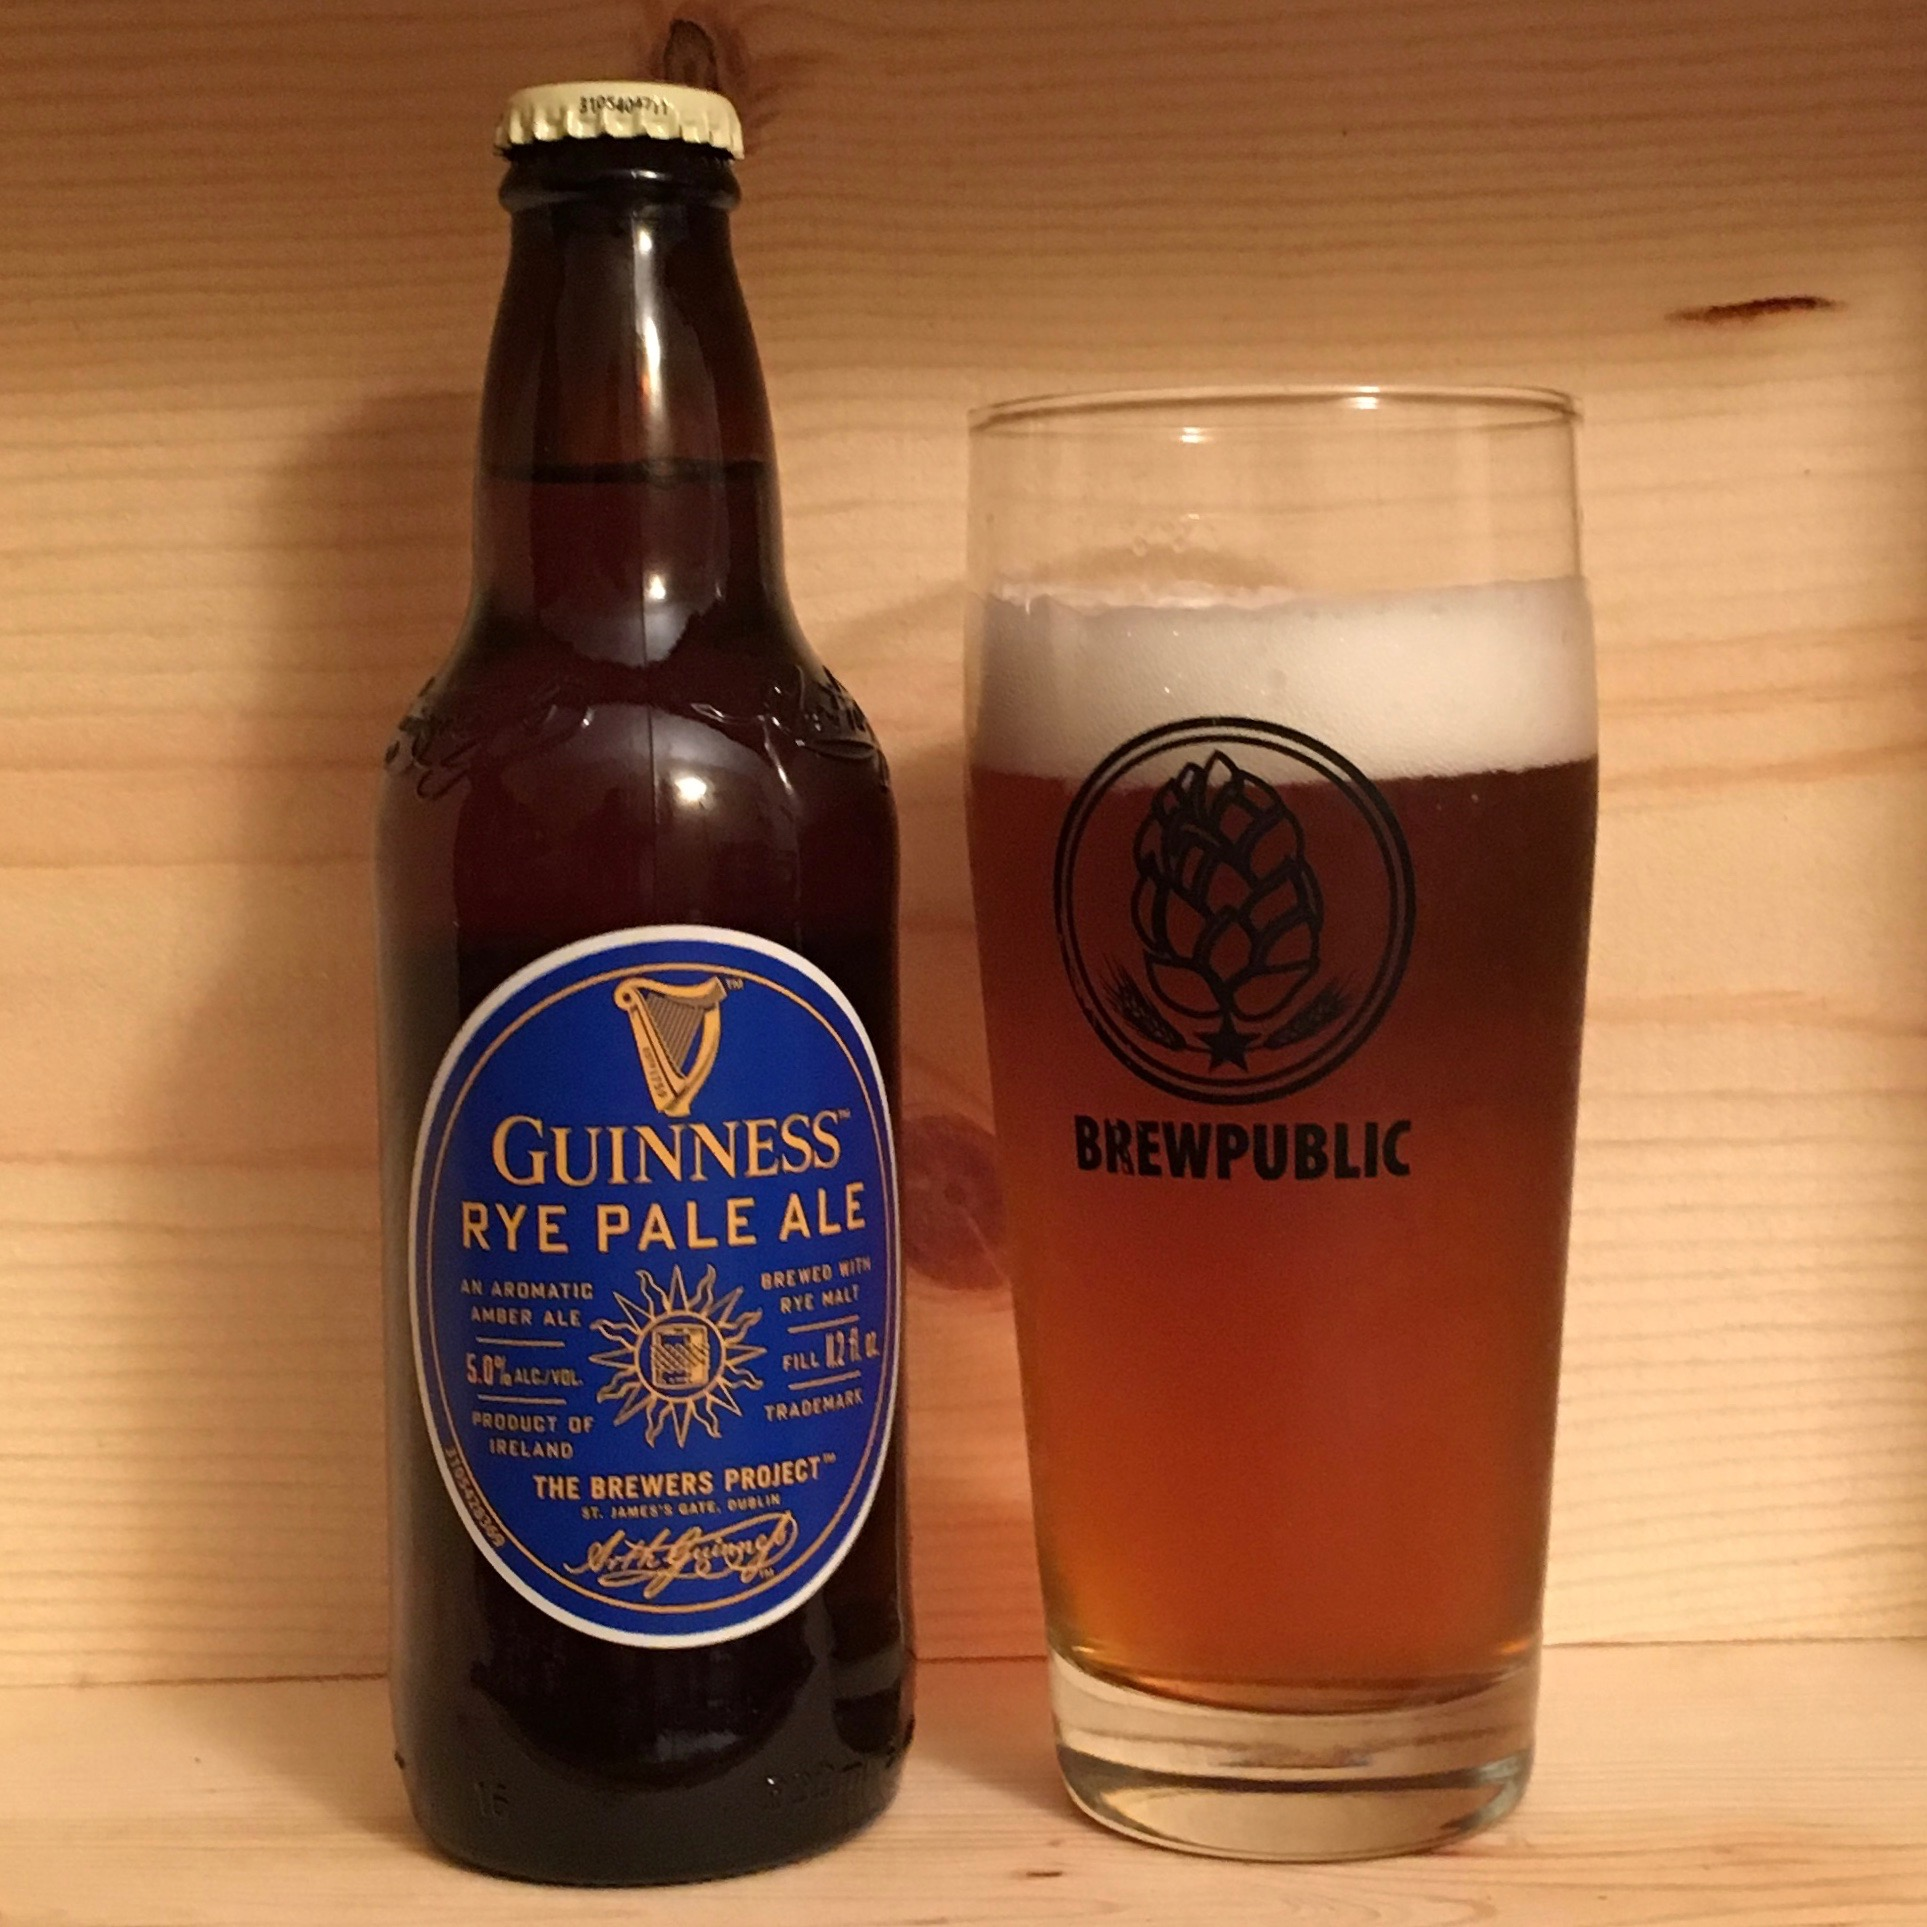 Guinness Rye Pale Ale is a delightful example of a rye pale ale. Great spice notes from the malted rye are accented nicely from the grapefruit notes of the Mosaic and Cascade Hops.